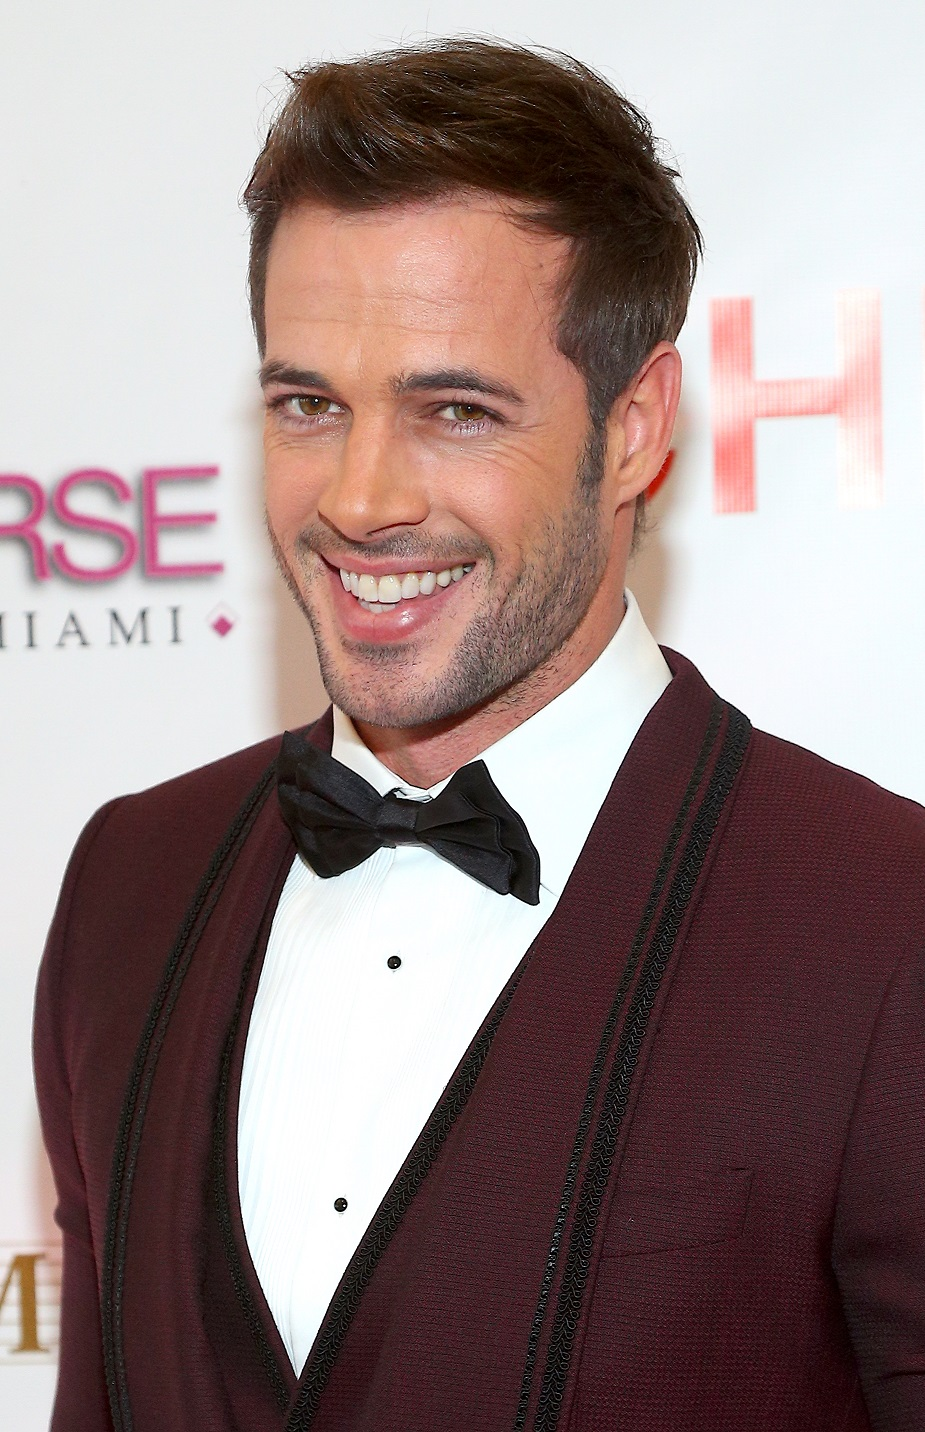 bdf77ad7c5e Fotos william levy en traje de bao